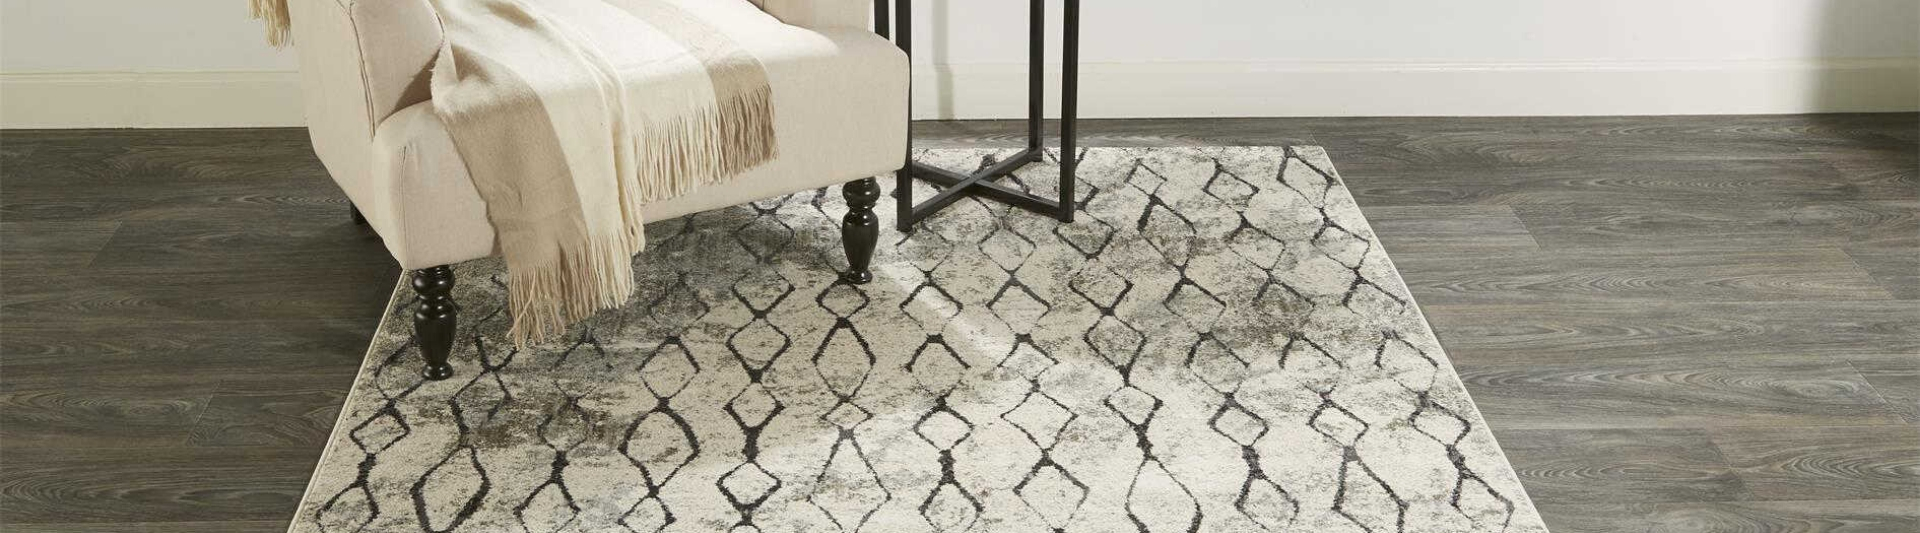 Area rugs for living rooms with chair and end table